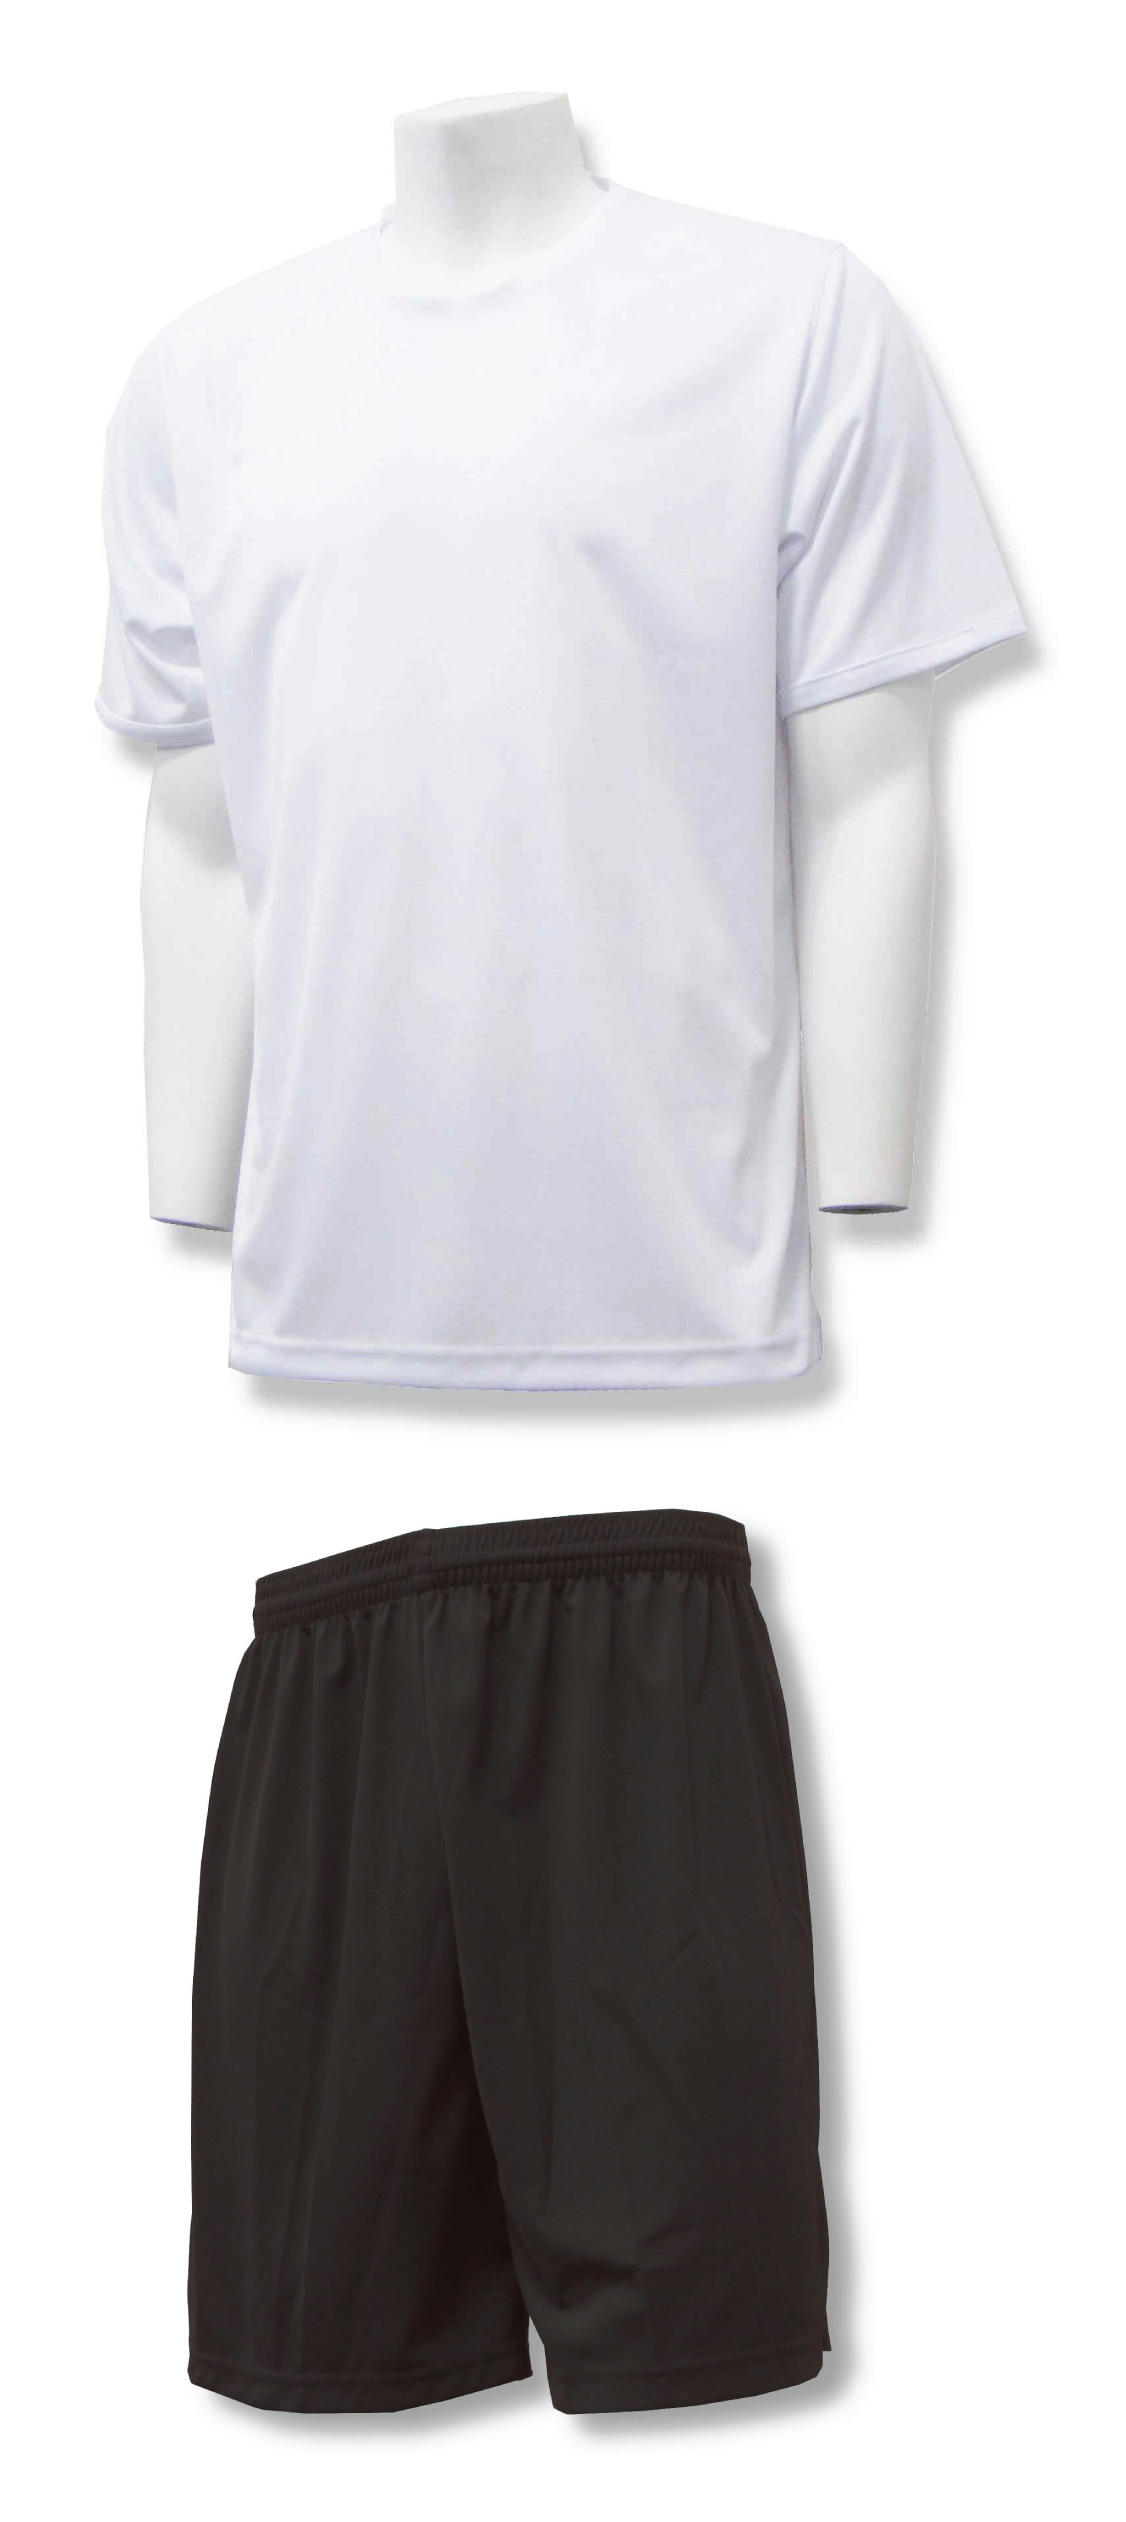 Soccer training uniform kit in white/black by Code Four Athletics